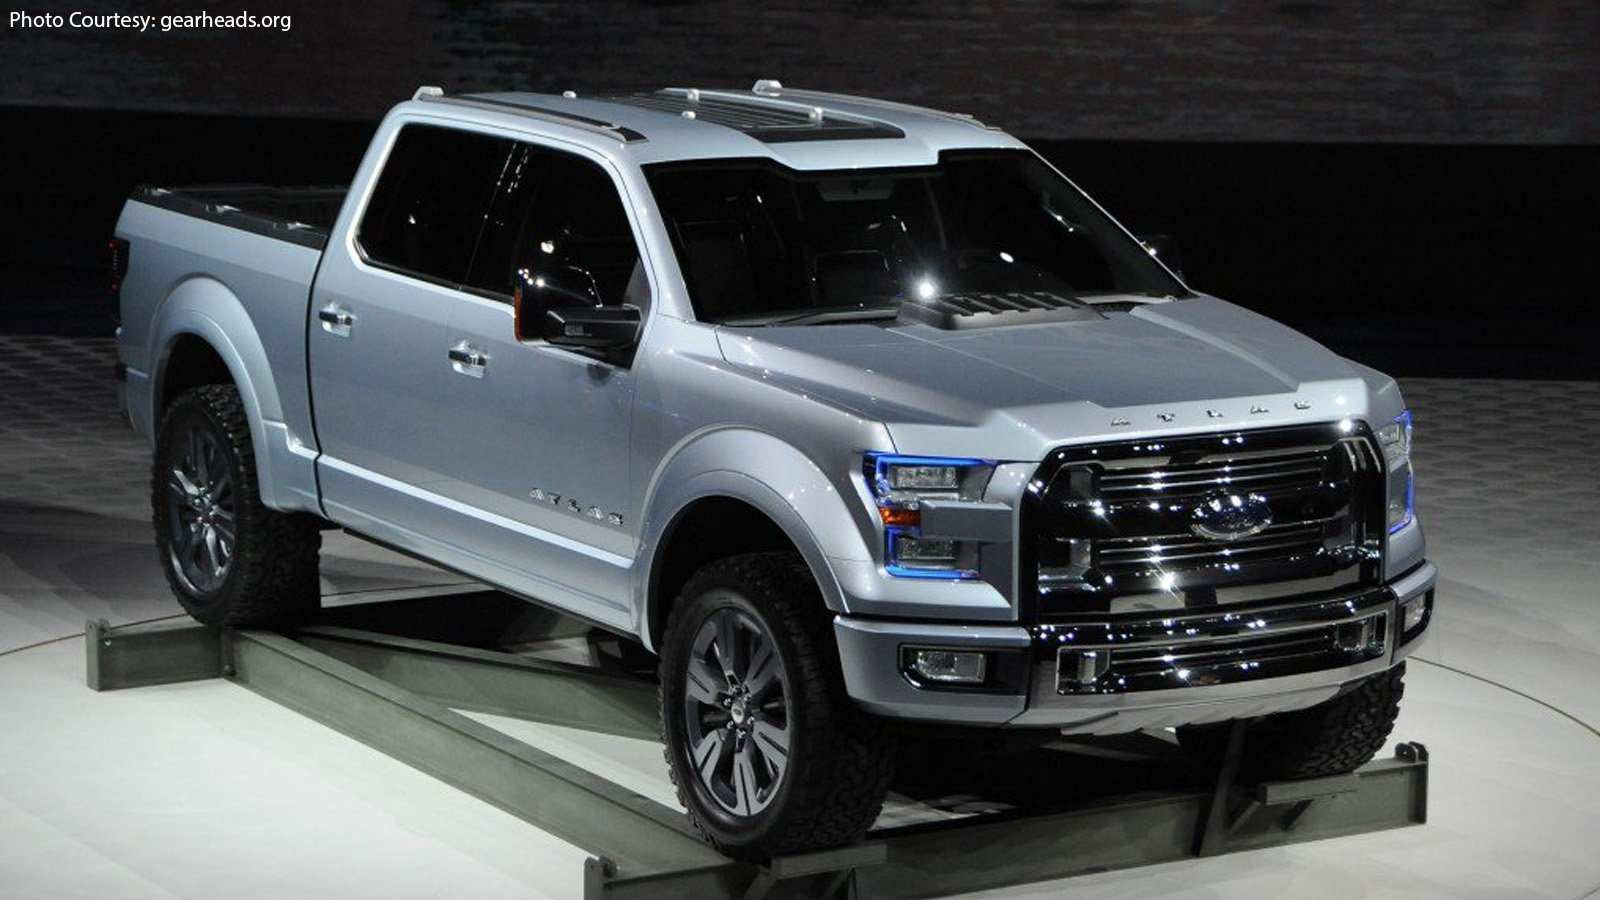 68 All New 2020 Ford F 150 Pricing for 2020 Ford F 150